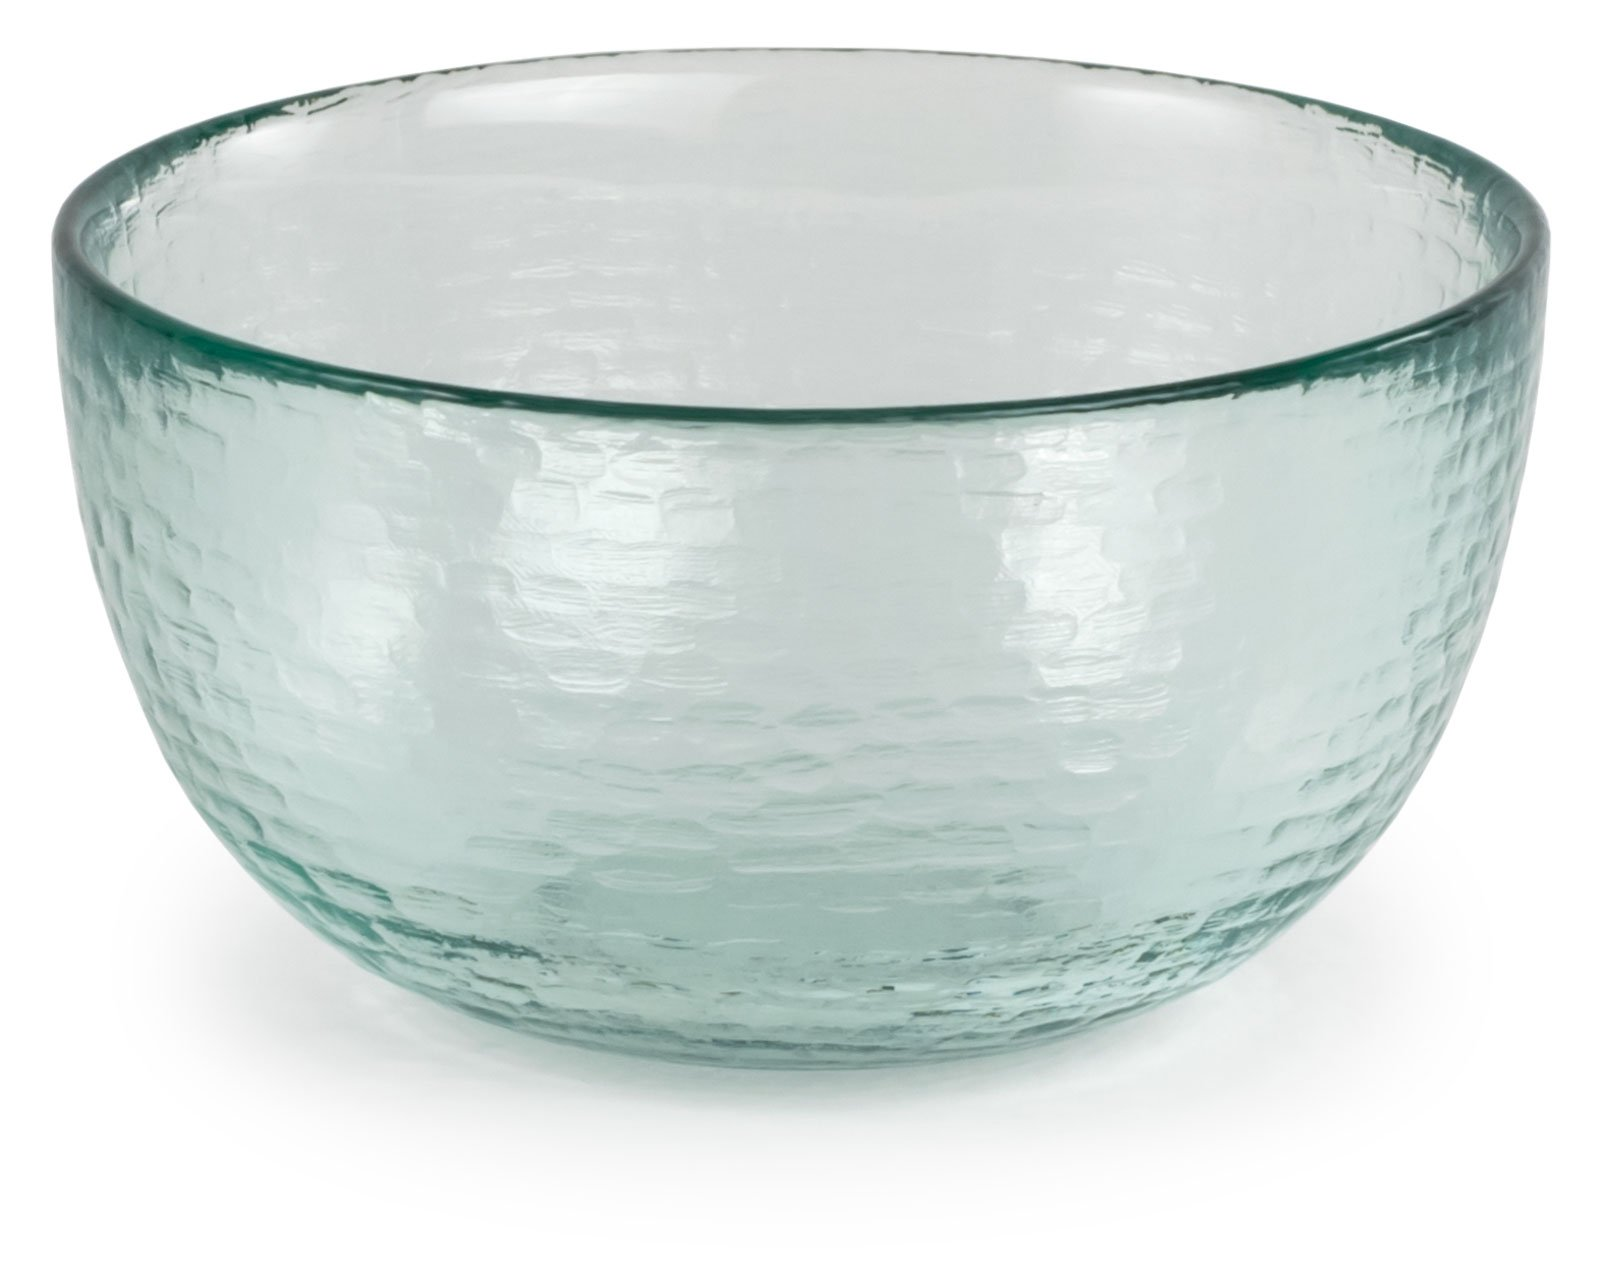 Spanish 100% Recycled Glass Medium Incised Salsa Bowl, Set of 2 - 5.25''Dx2.75''H